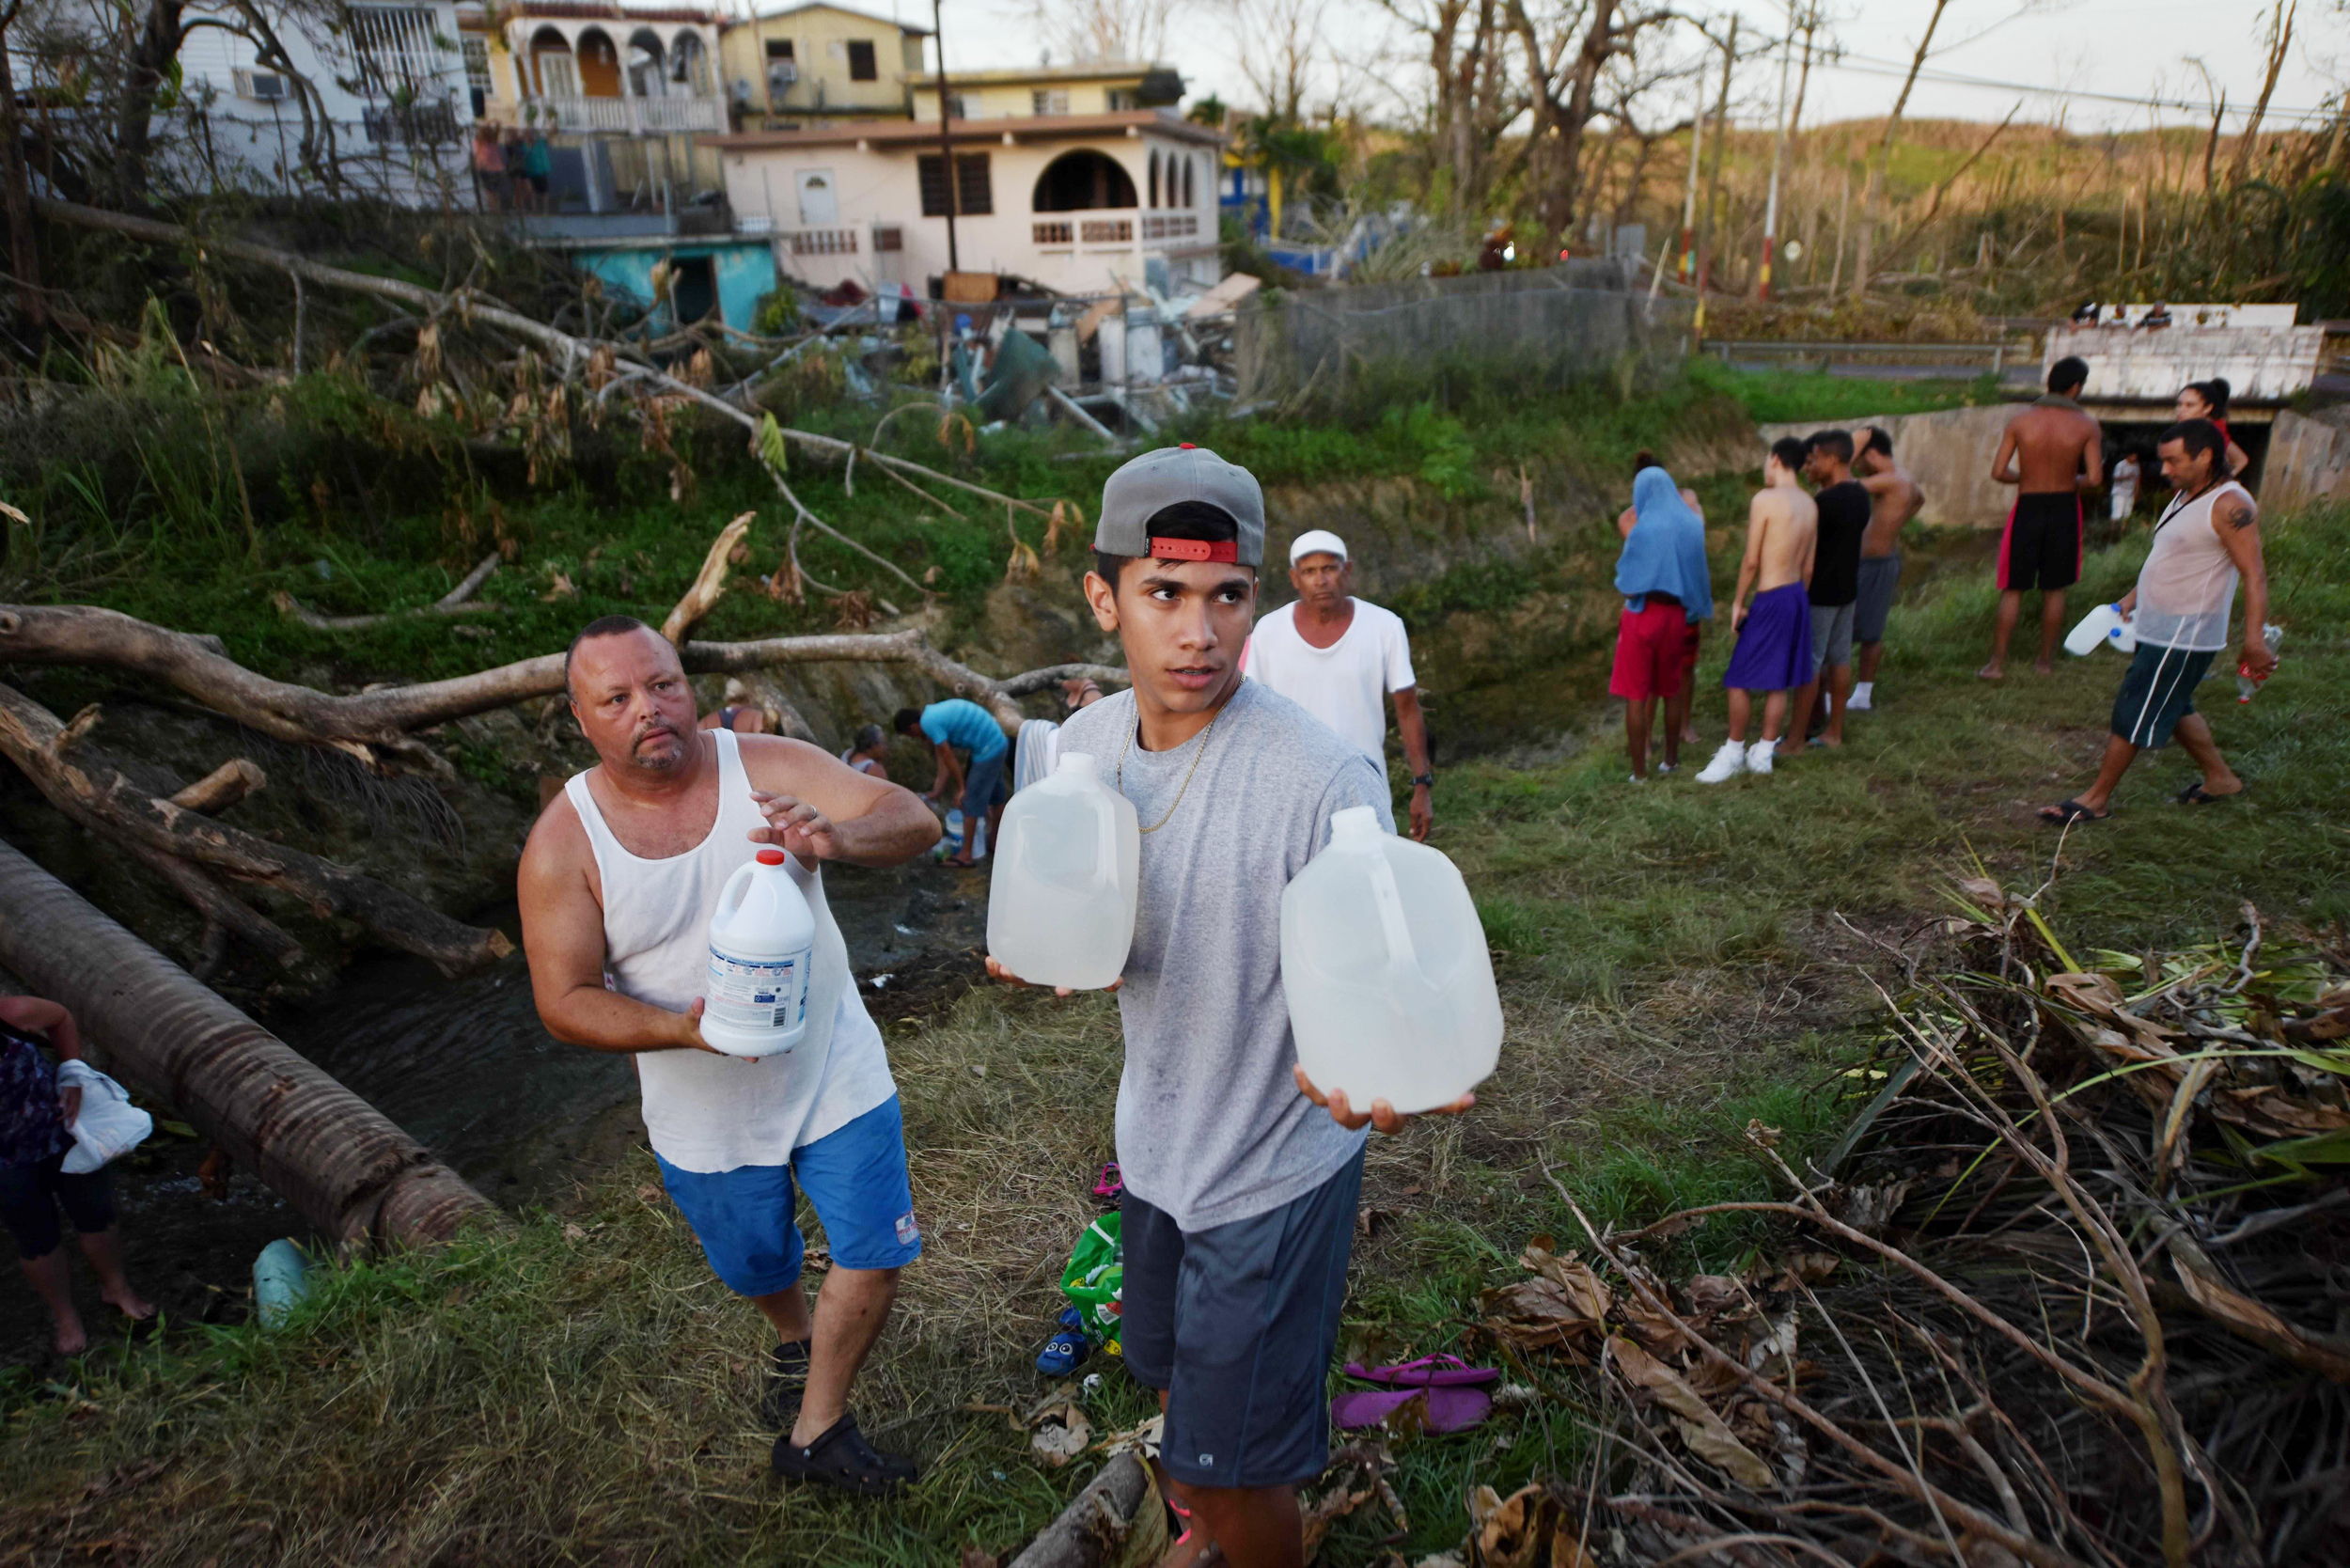 Image: People carry water in bottles retrieved from a canal due to lack of water following passage of Hurricane Maria, in Toa Alta, Puerto Rico